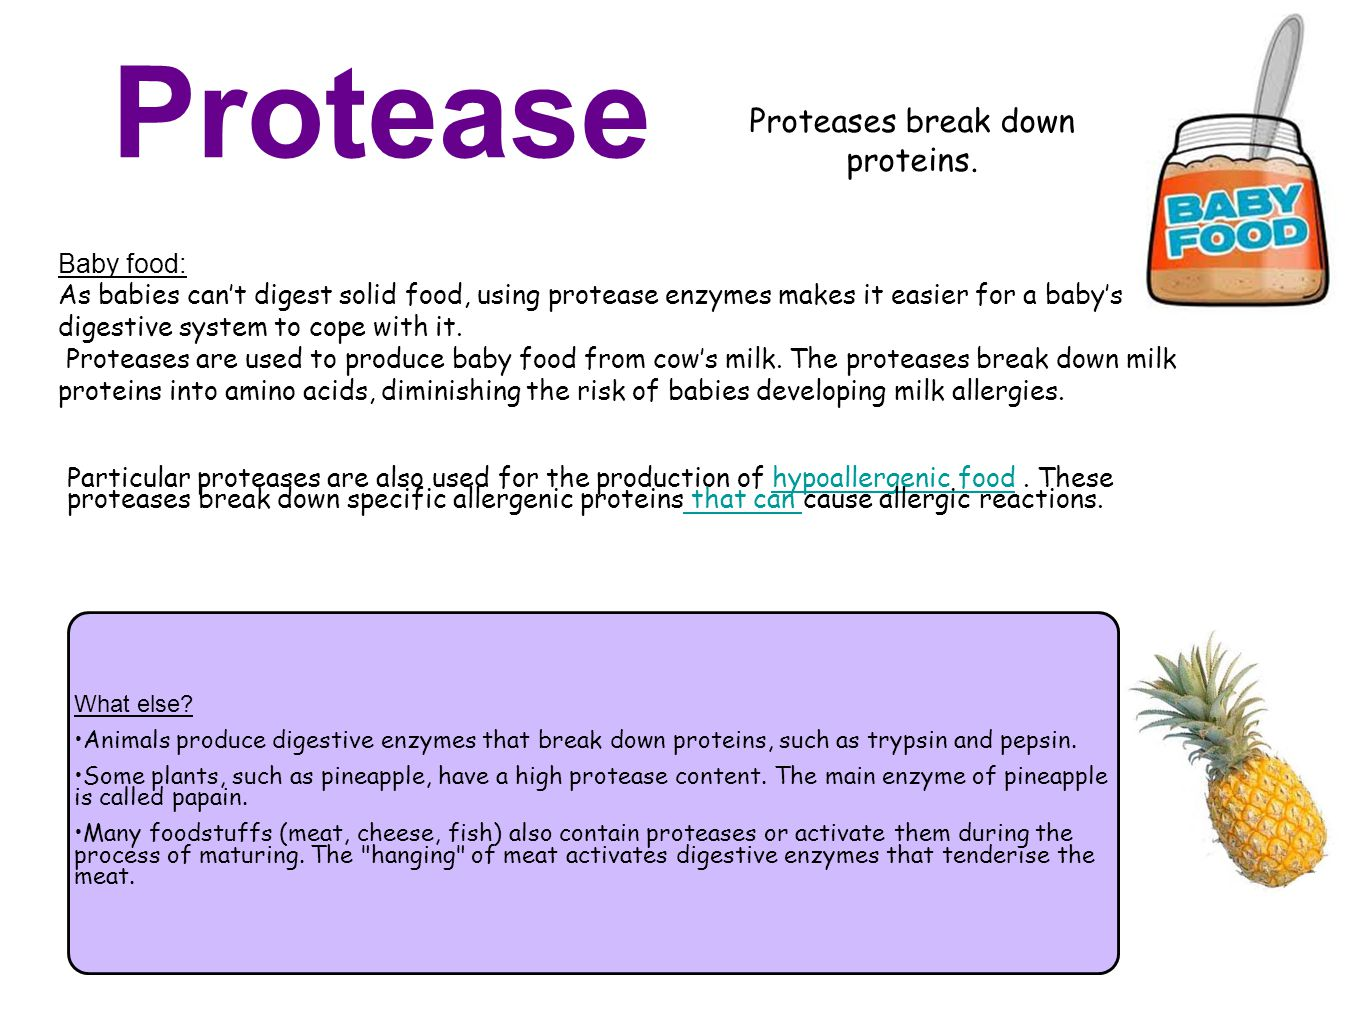 Proteases break down proteins